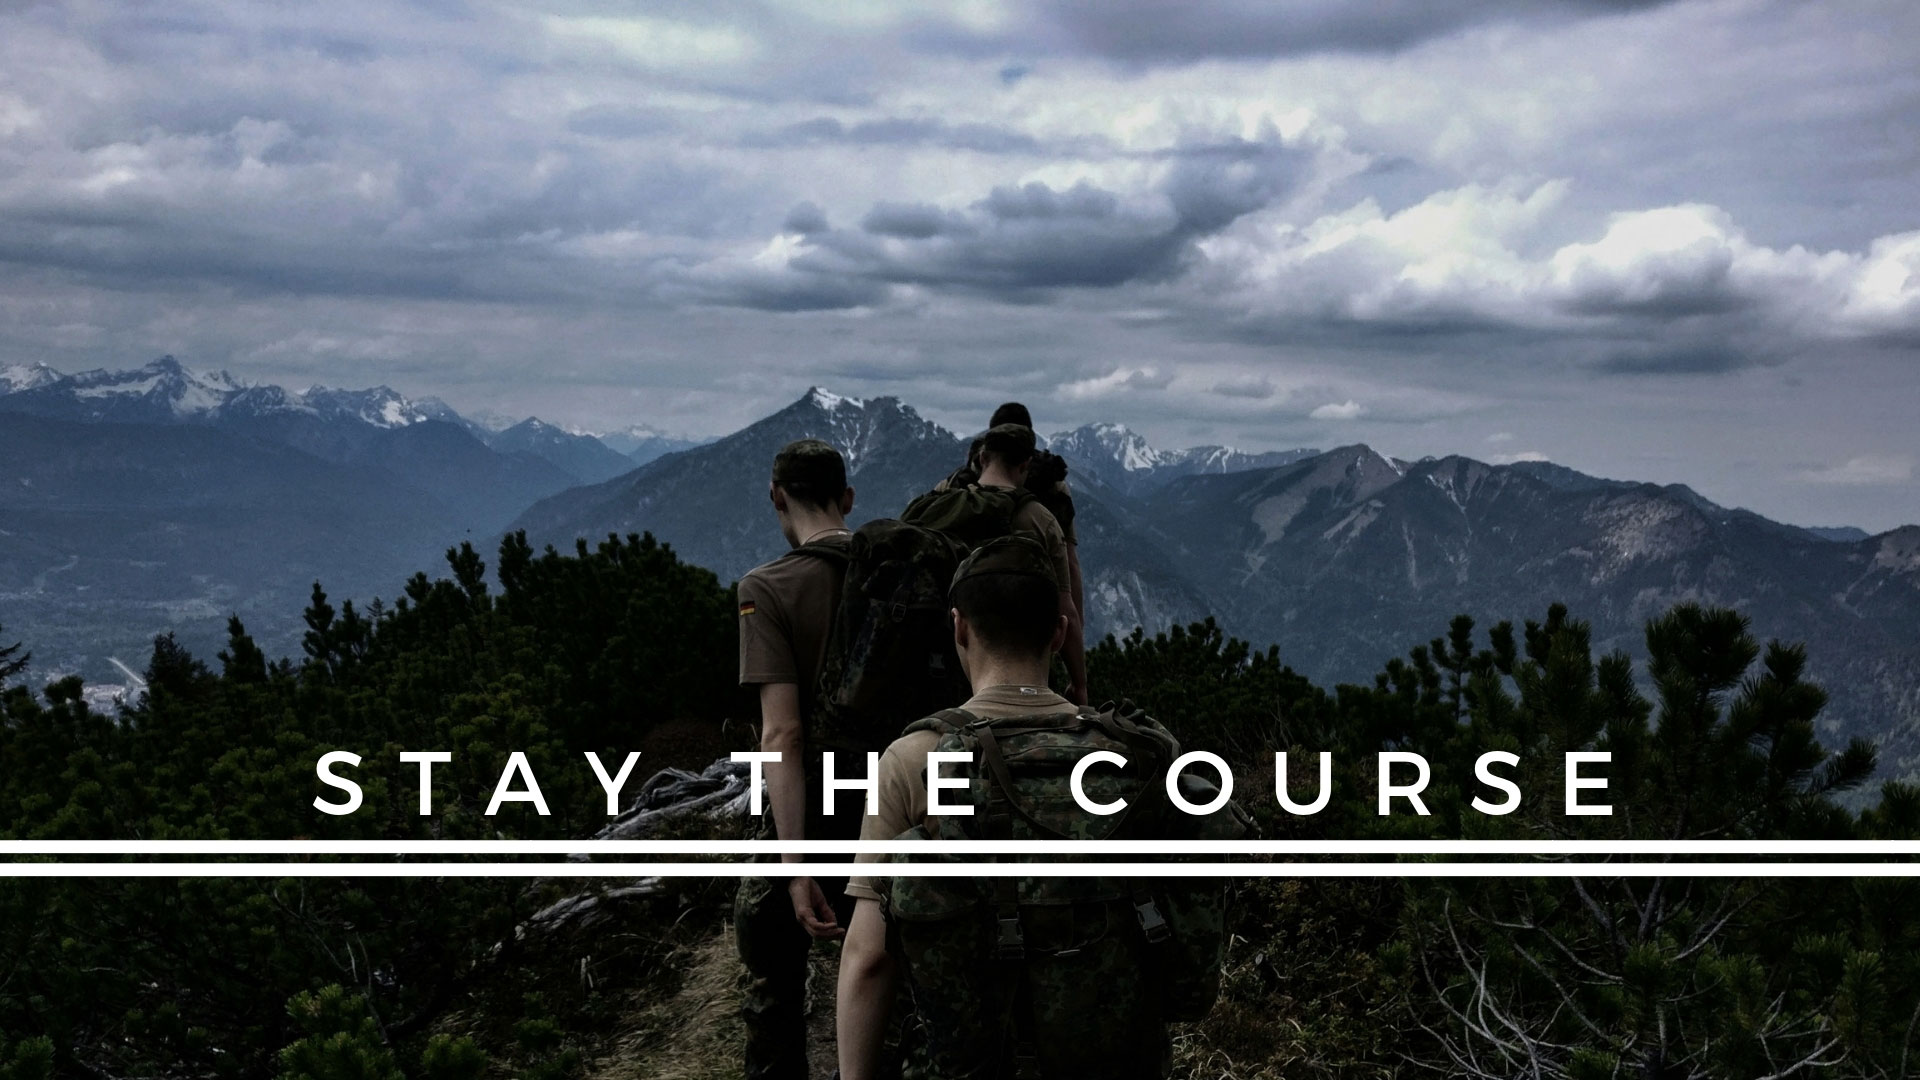 Series: Stay The Course